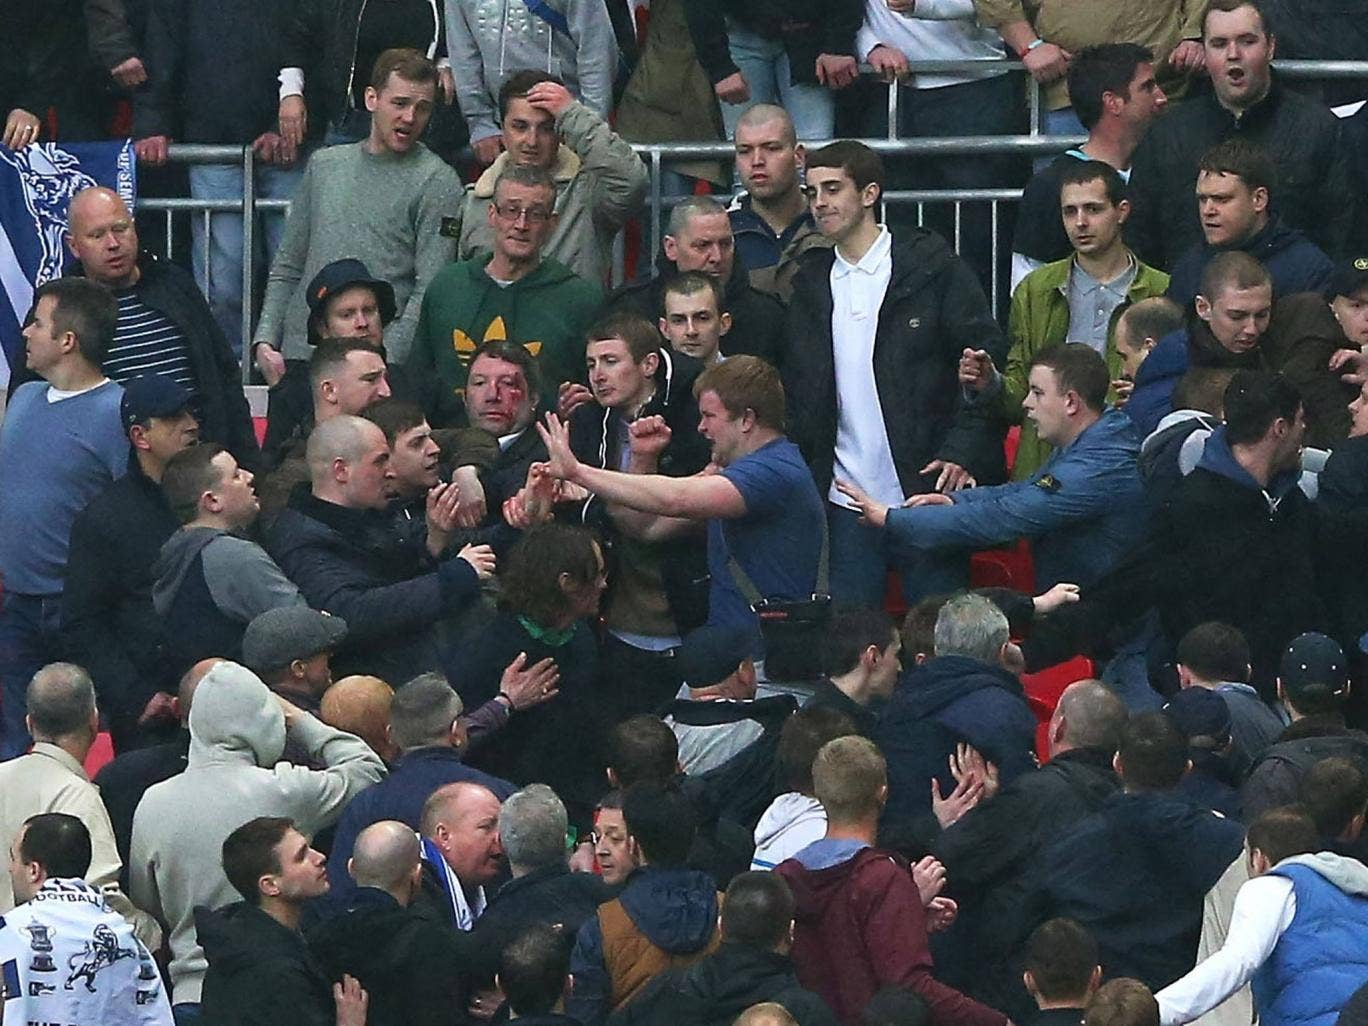 Millwall fans pictured fighting at Wembley